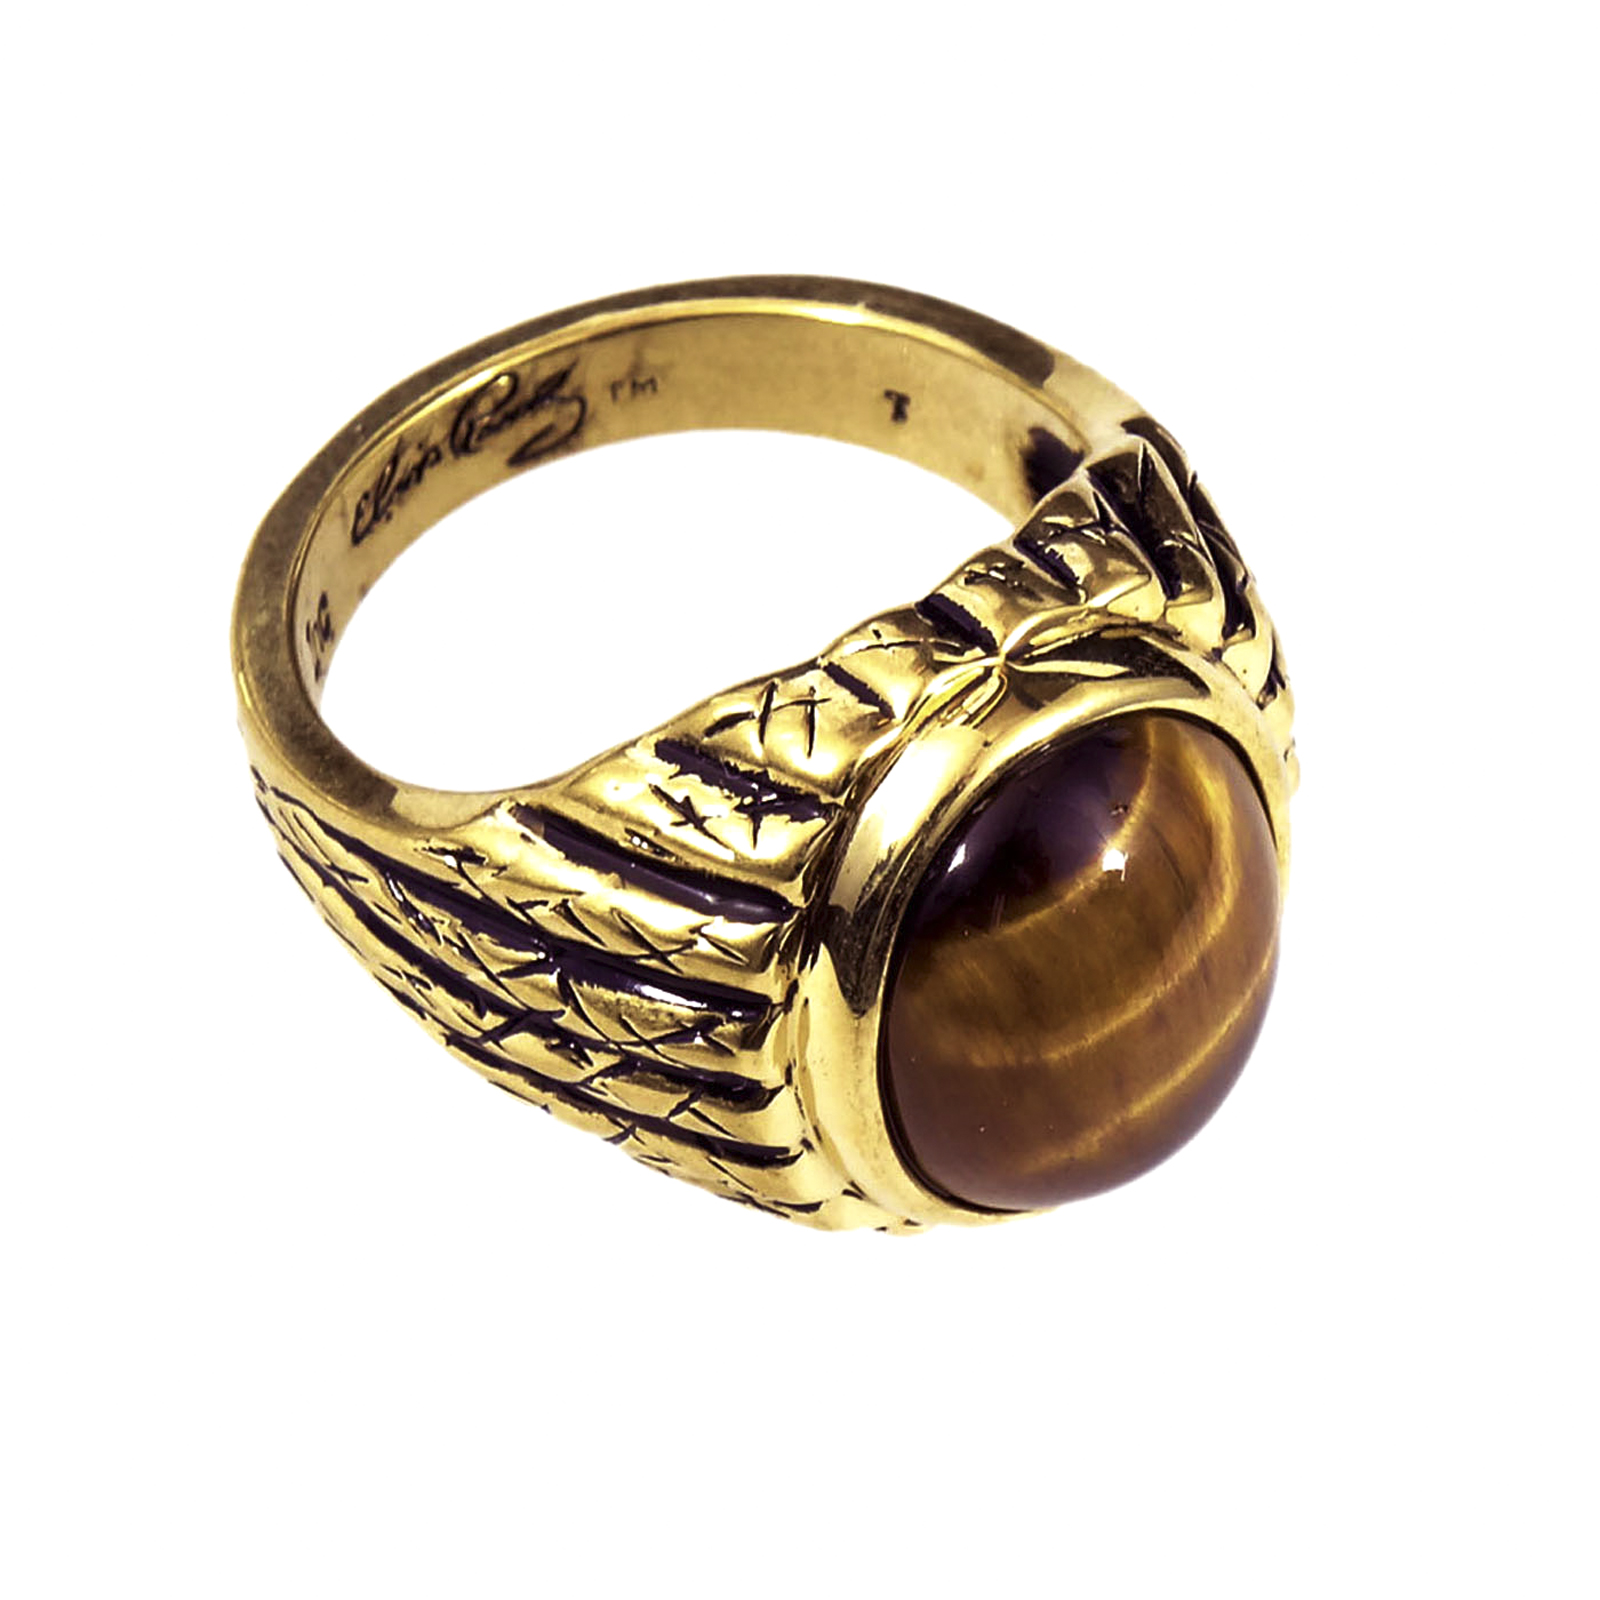 image fashion rings in den jewelry amanita english warenkorb tigers eye